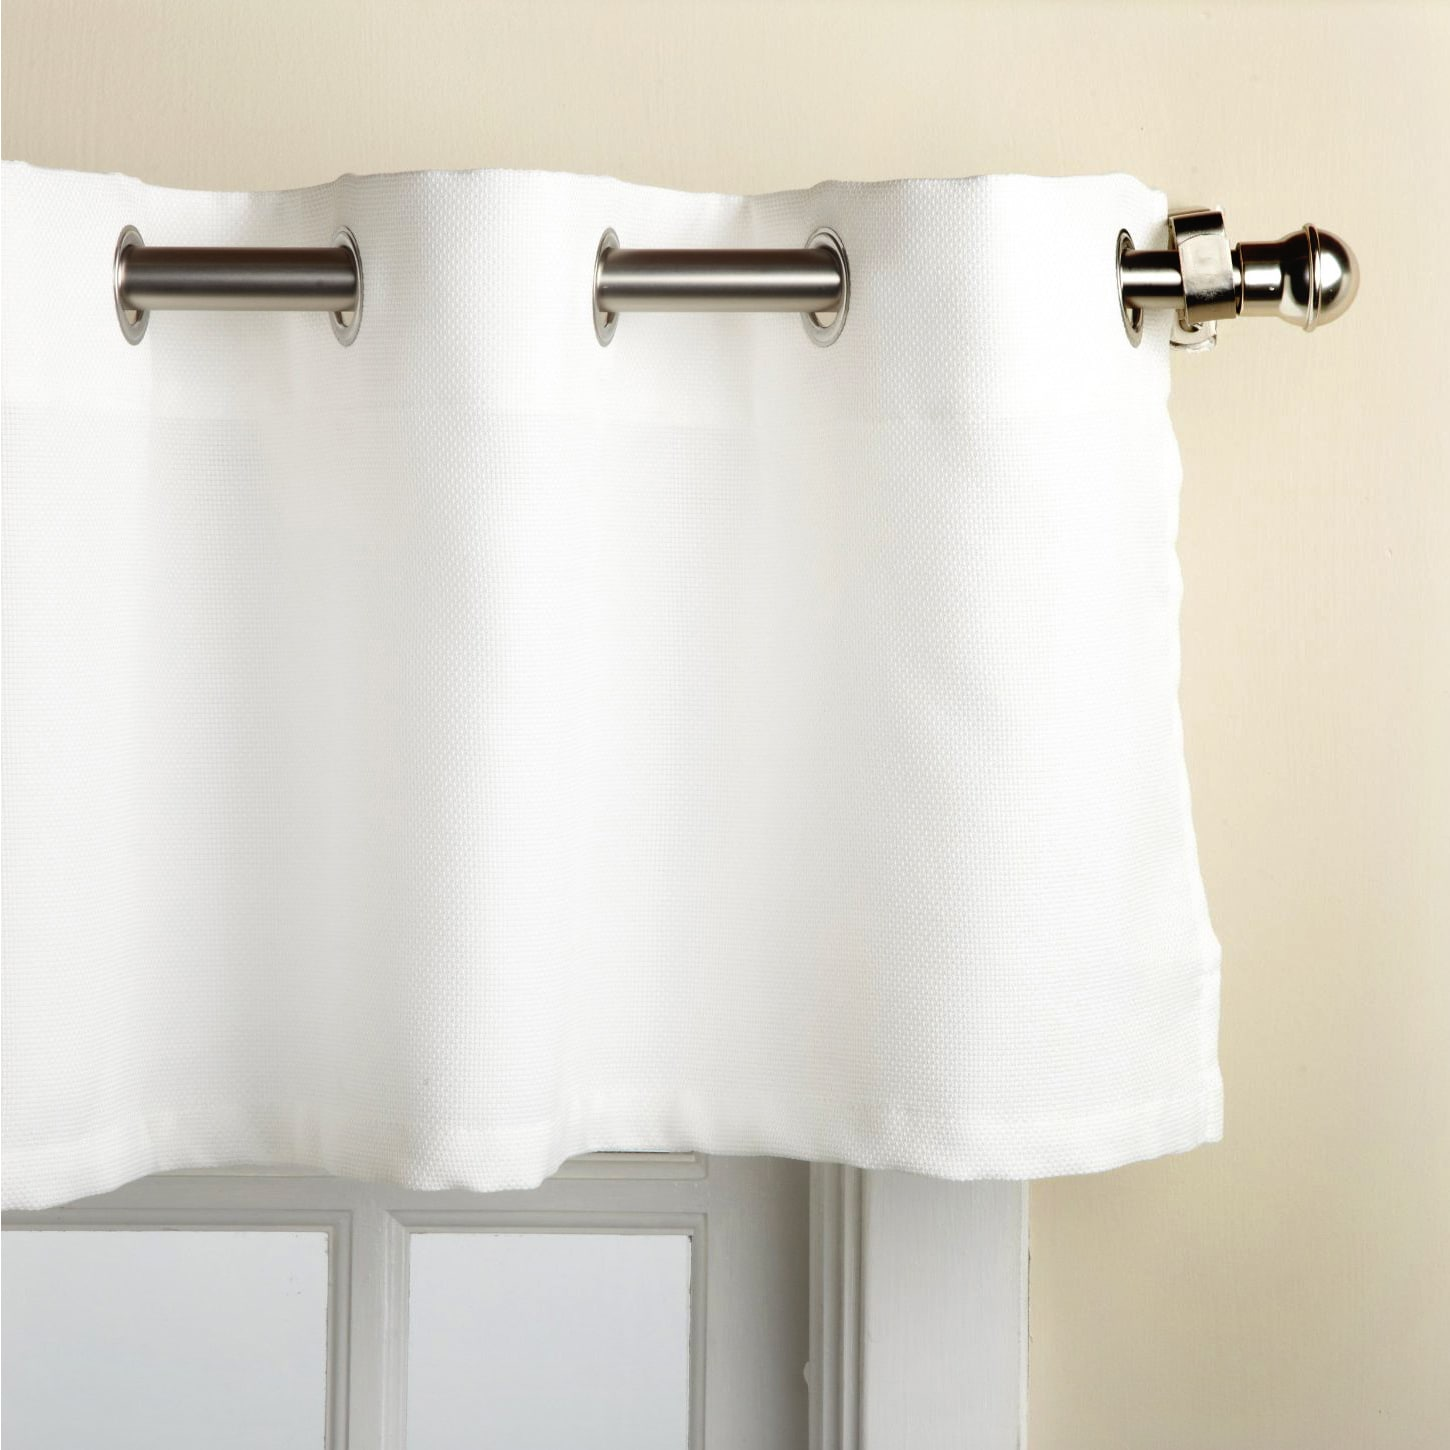 Modern Subtle Texture Solid White Kitchen Curtain Parts With Grommets Tier And Valance Options Overstock 10224892 Tier Pair 58 X 36